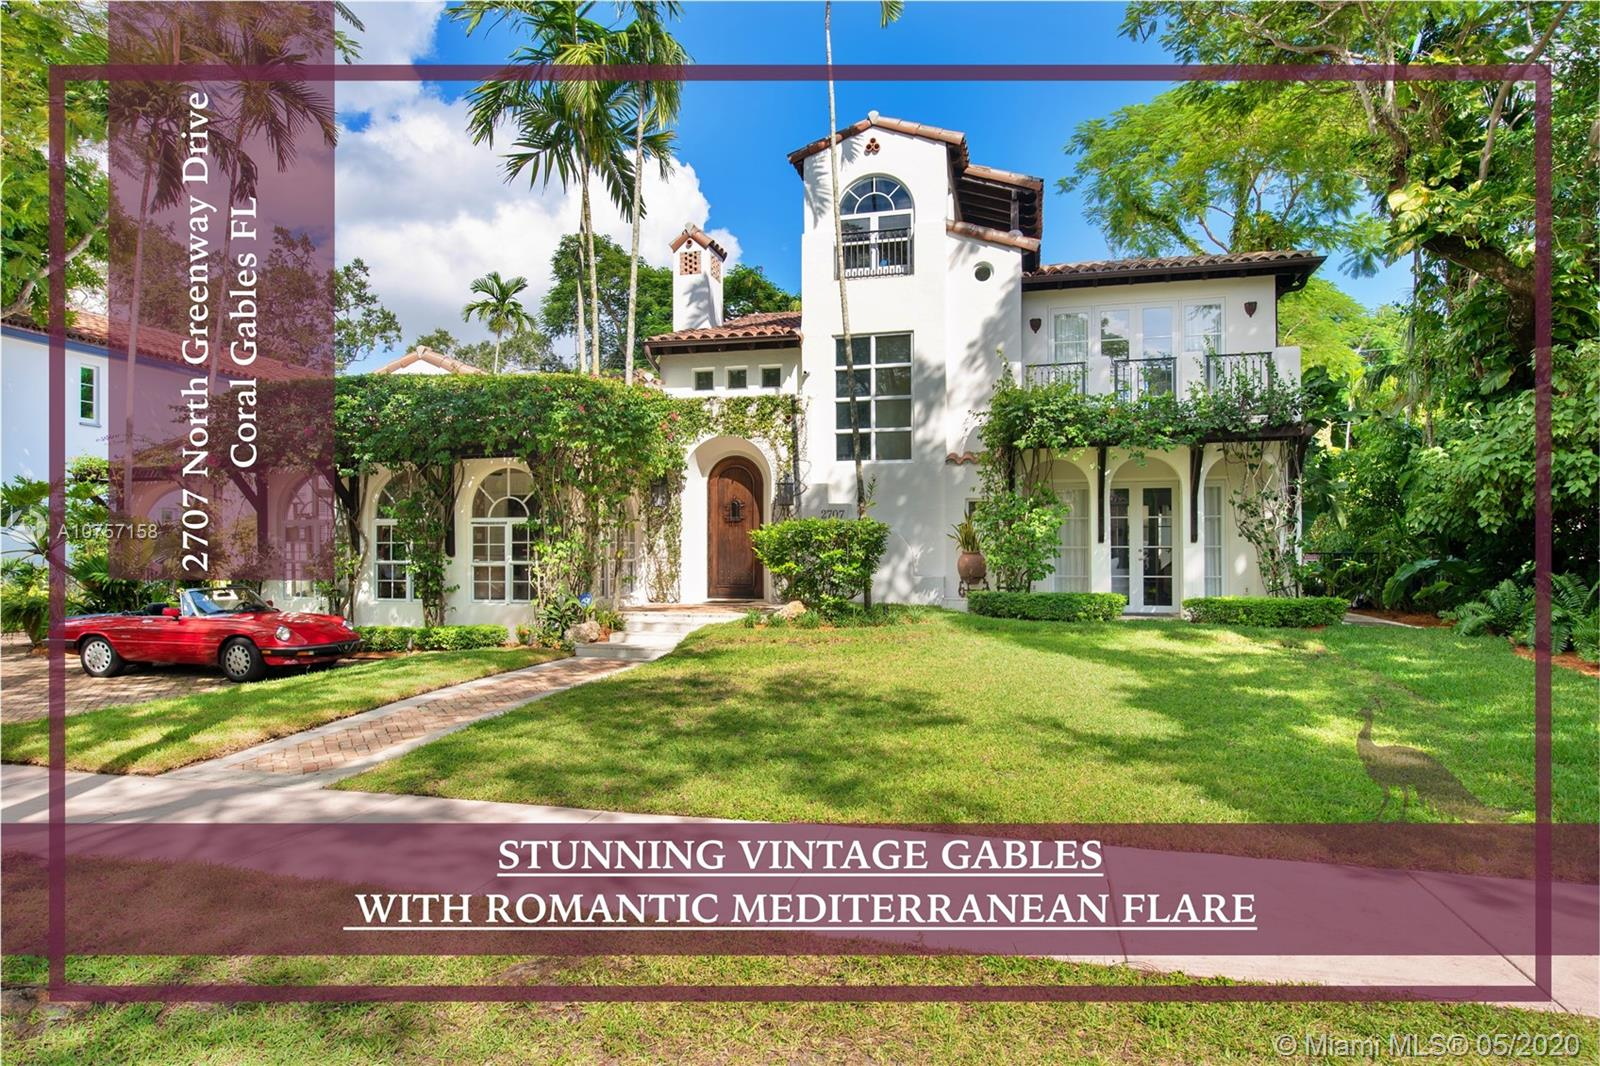 2707 N Greenway Dr, Coral Gables, Florida 33134, 5 Bedrooms Bedrooms, ,5 BathroomsBathrooms,Residential,For Sale,2707 N Greenway Dr,A10757158